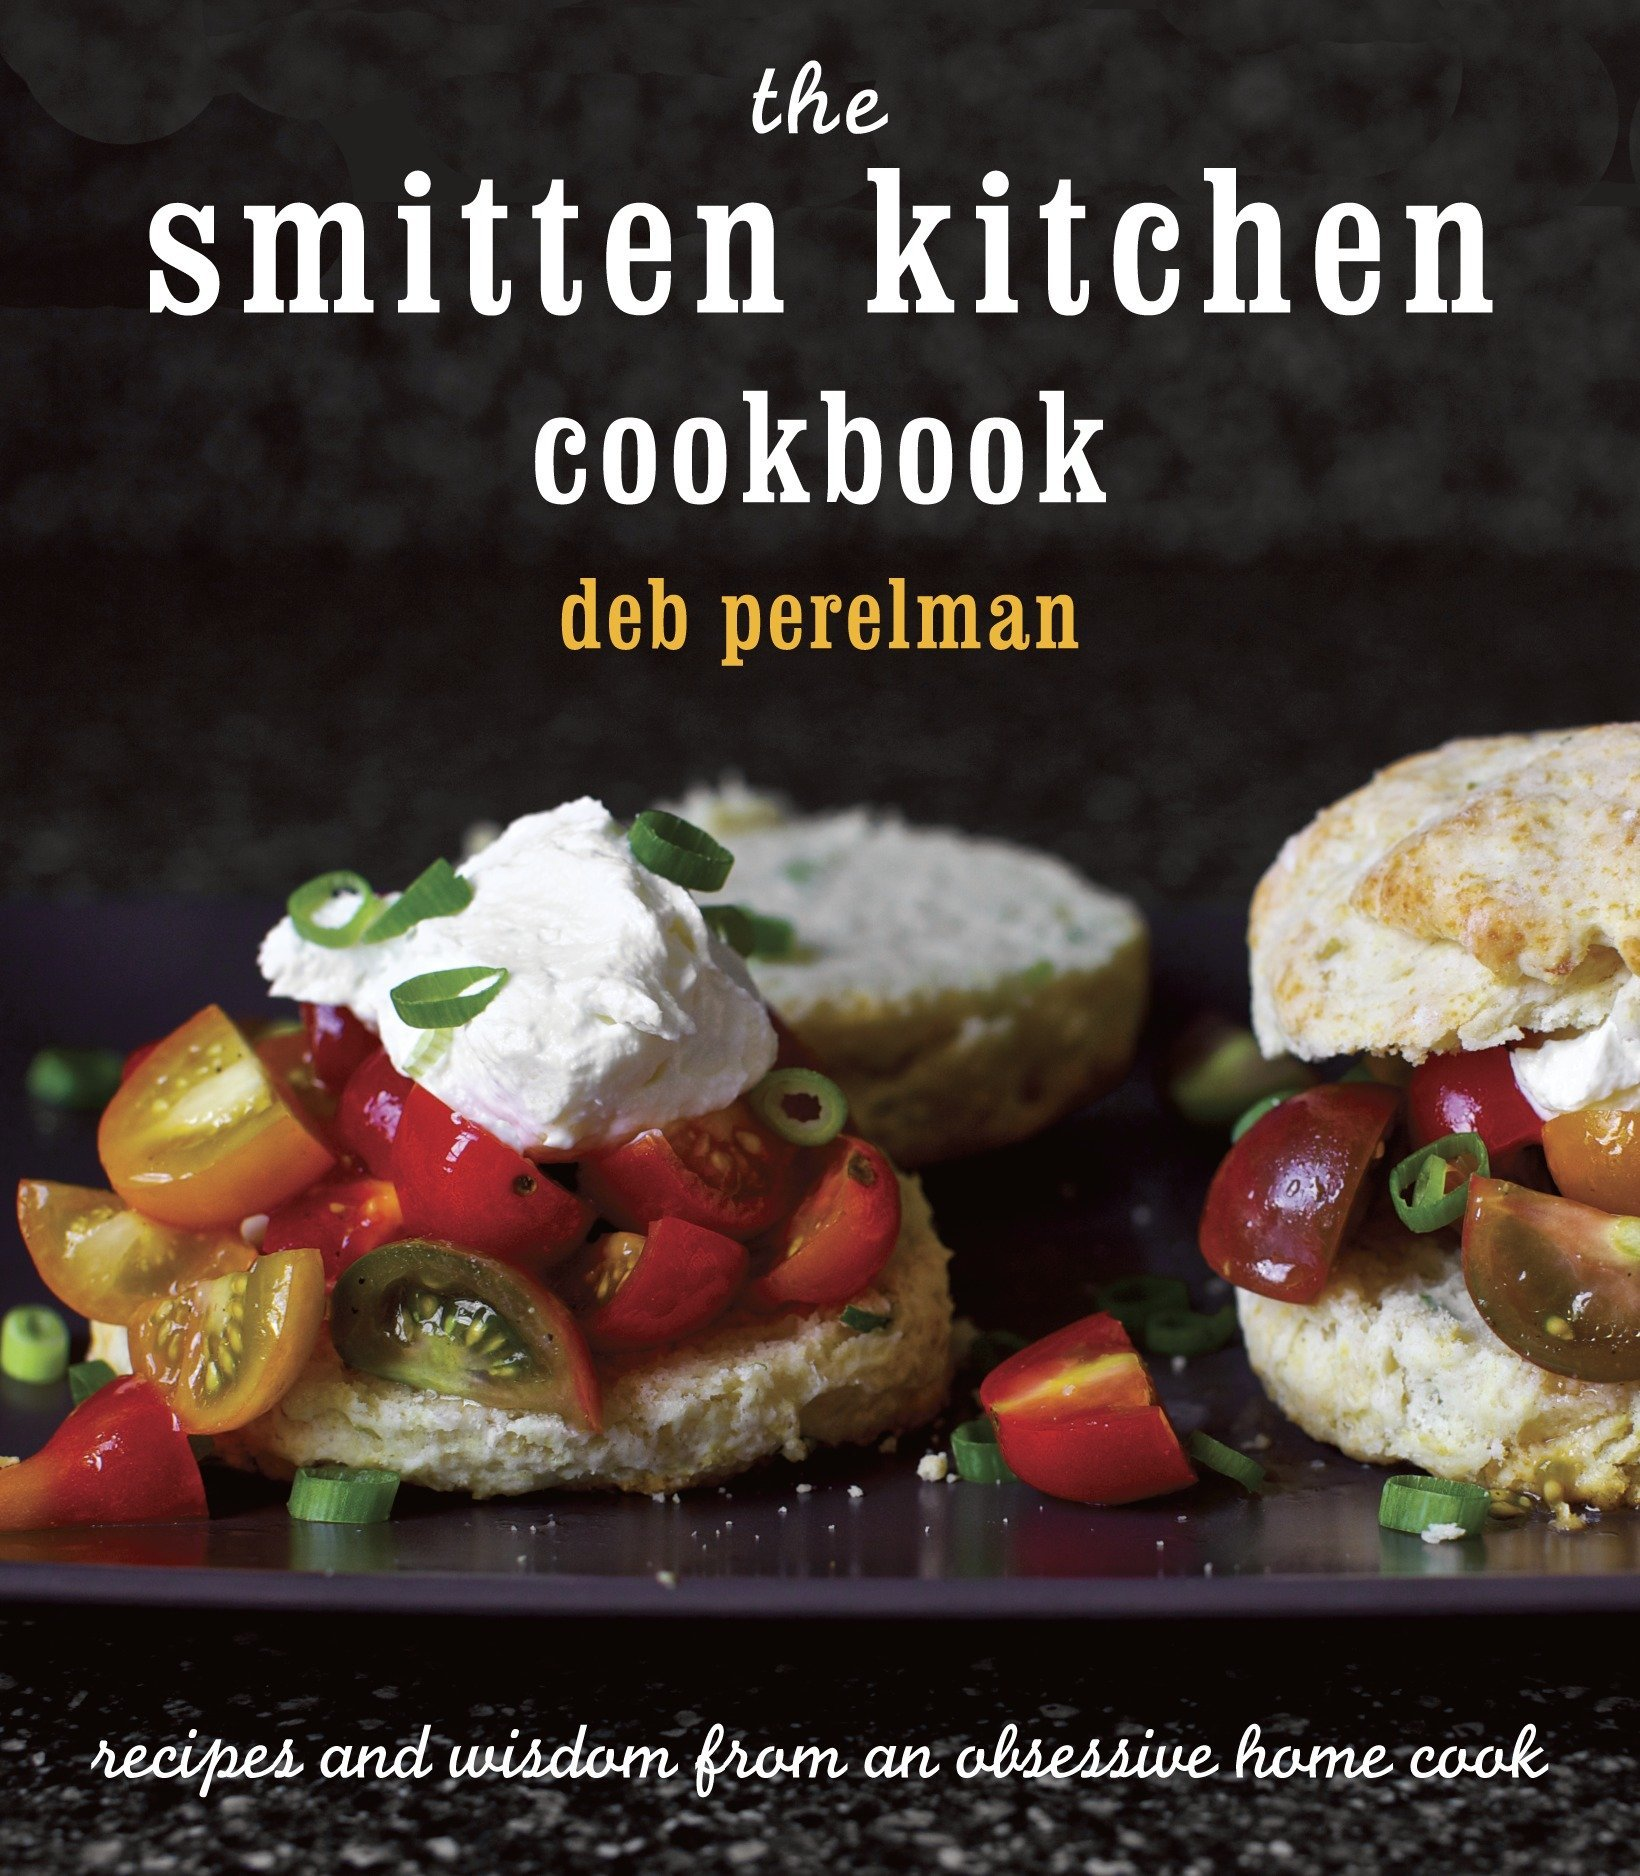 The Smitten Kitchen Cookbook Recipes And Wisdom From An